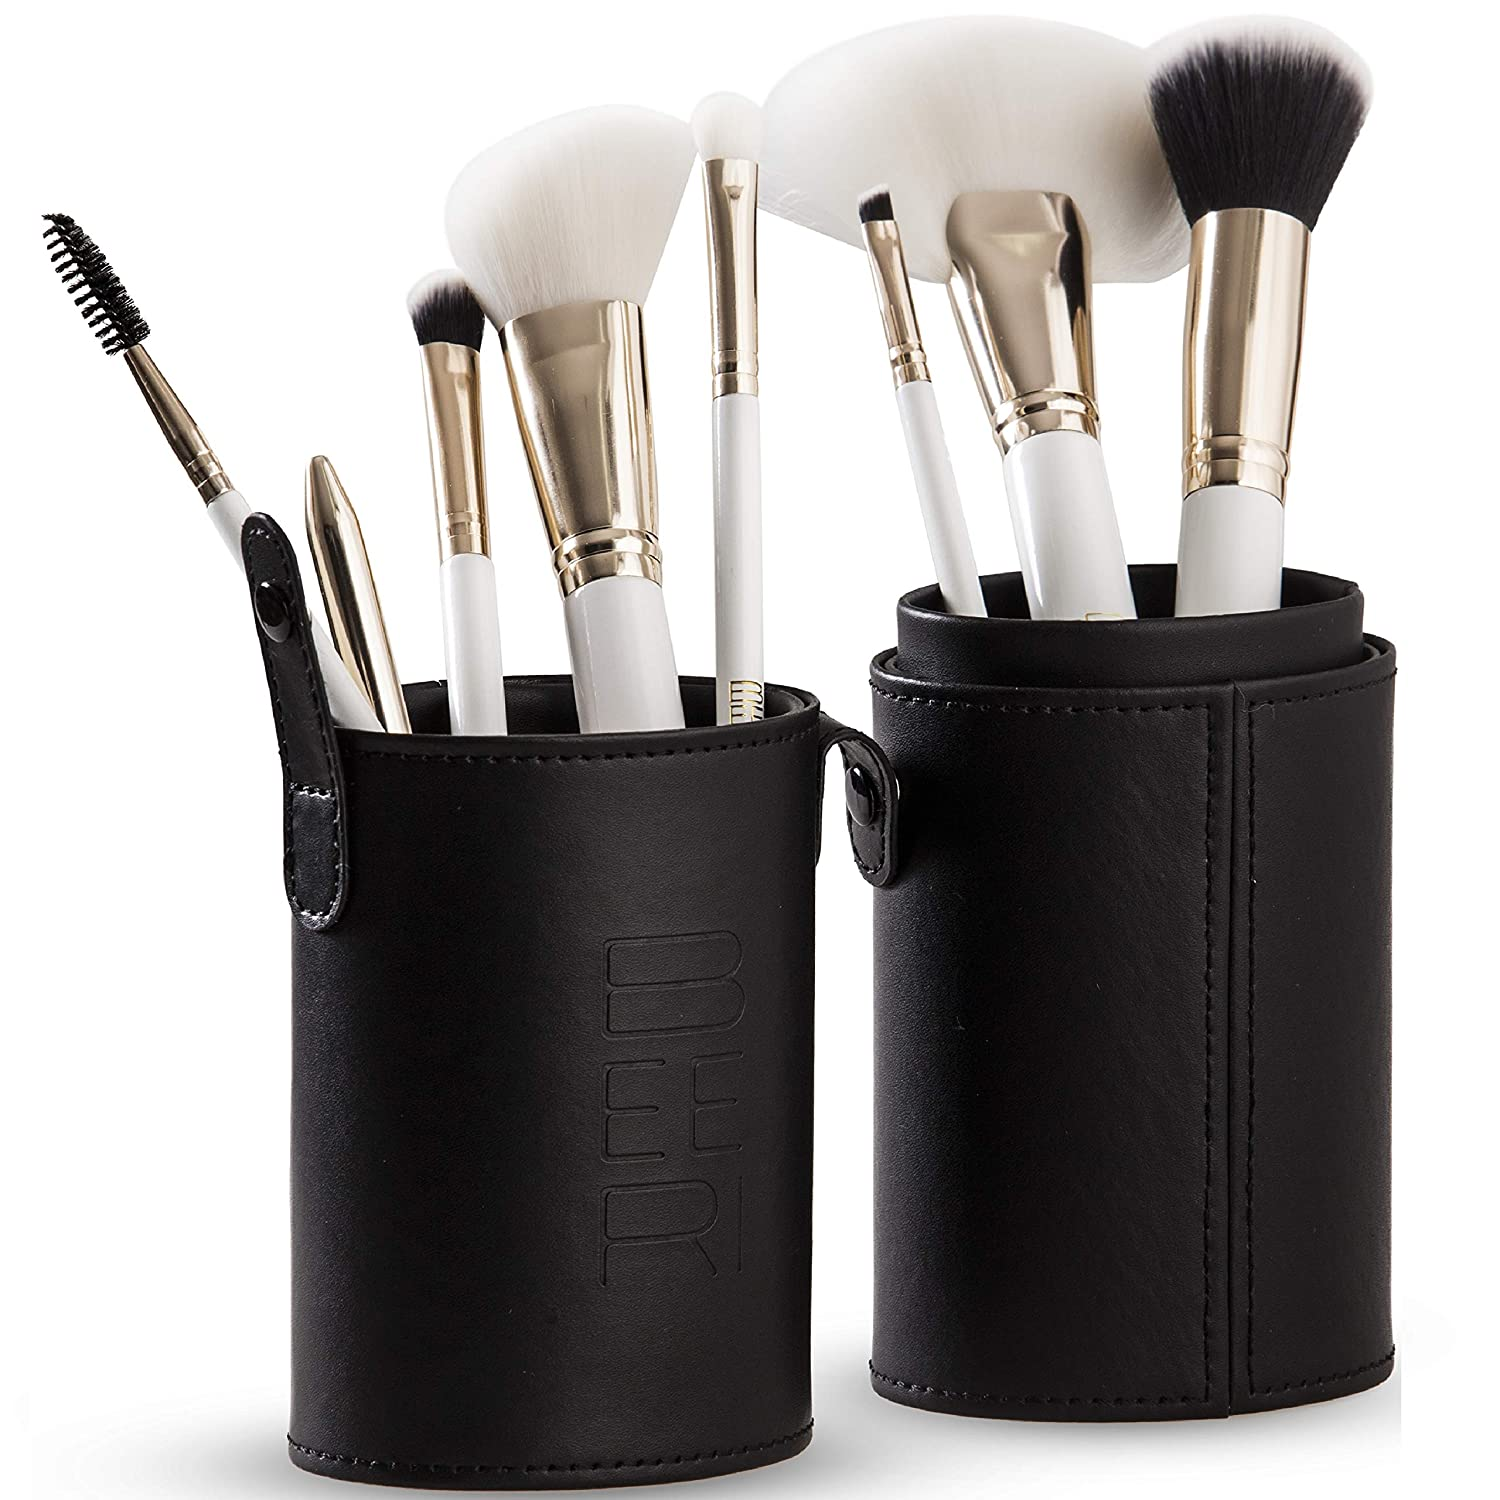 Professional Makeup Brush Set - 8 Ultra-Soft, Synthetic Cosmetic Brushes and Travel Case/Holder - Complete Set of Makeup Brushes for Face, Eye, Brow, and Complexion by BEERI.